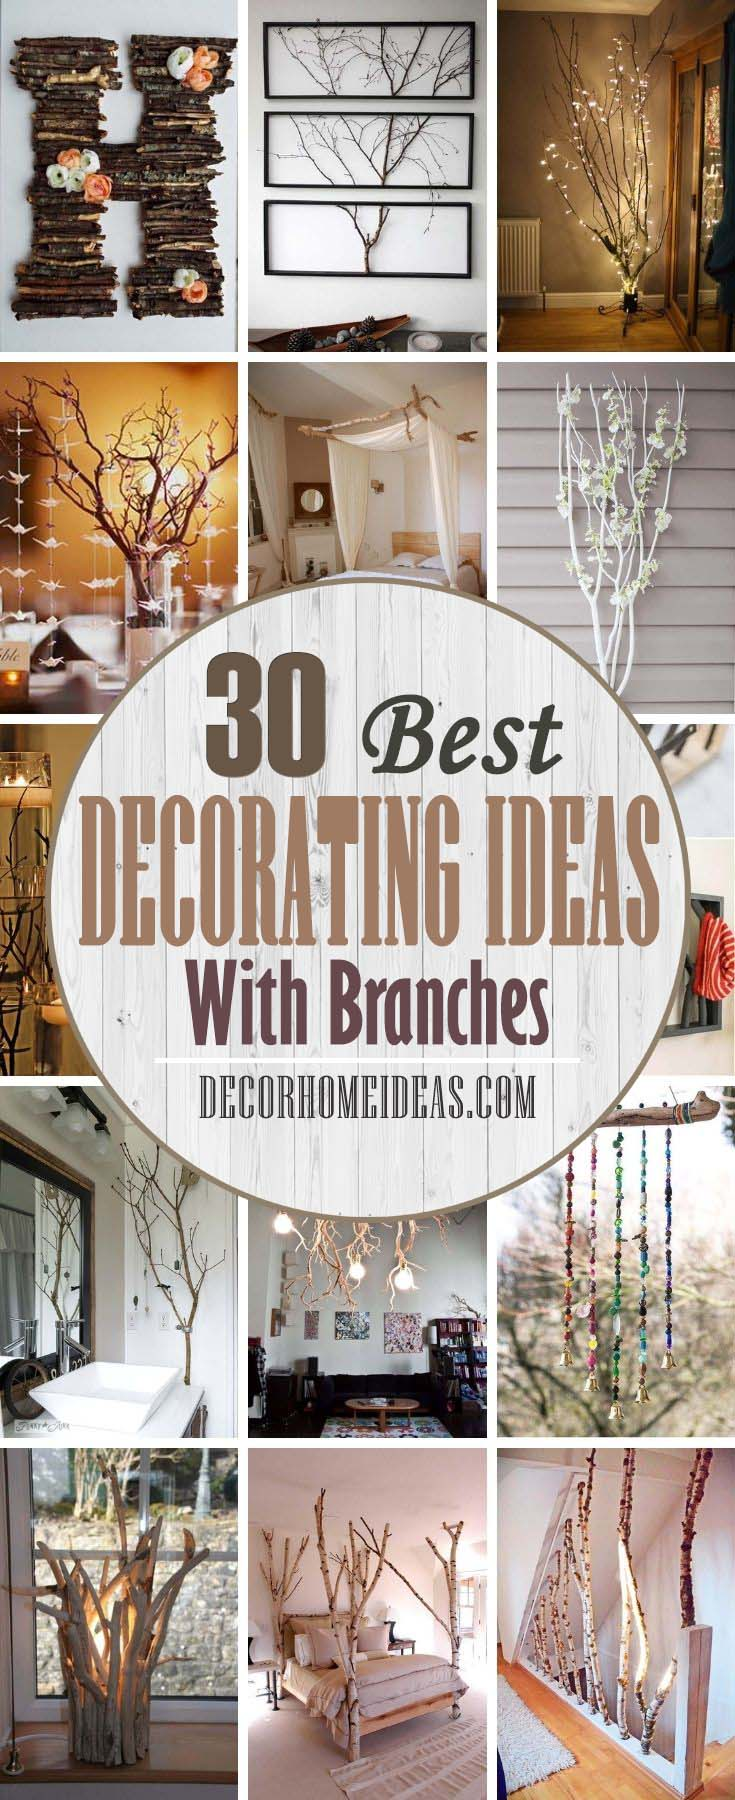 Best Decorating Ideas With Branches. Tree branches are popular interior decorations as they have some advantages - they are free and you can arrange them the way you like. Here are some fantastic ideas to decorate your home and incorporate nature in your interior. #decorhomeideas